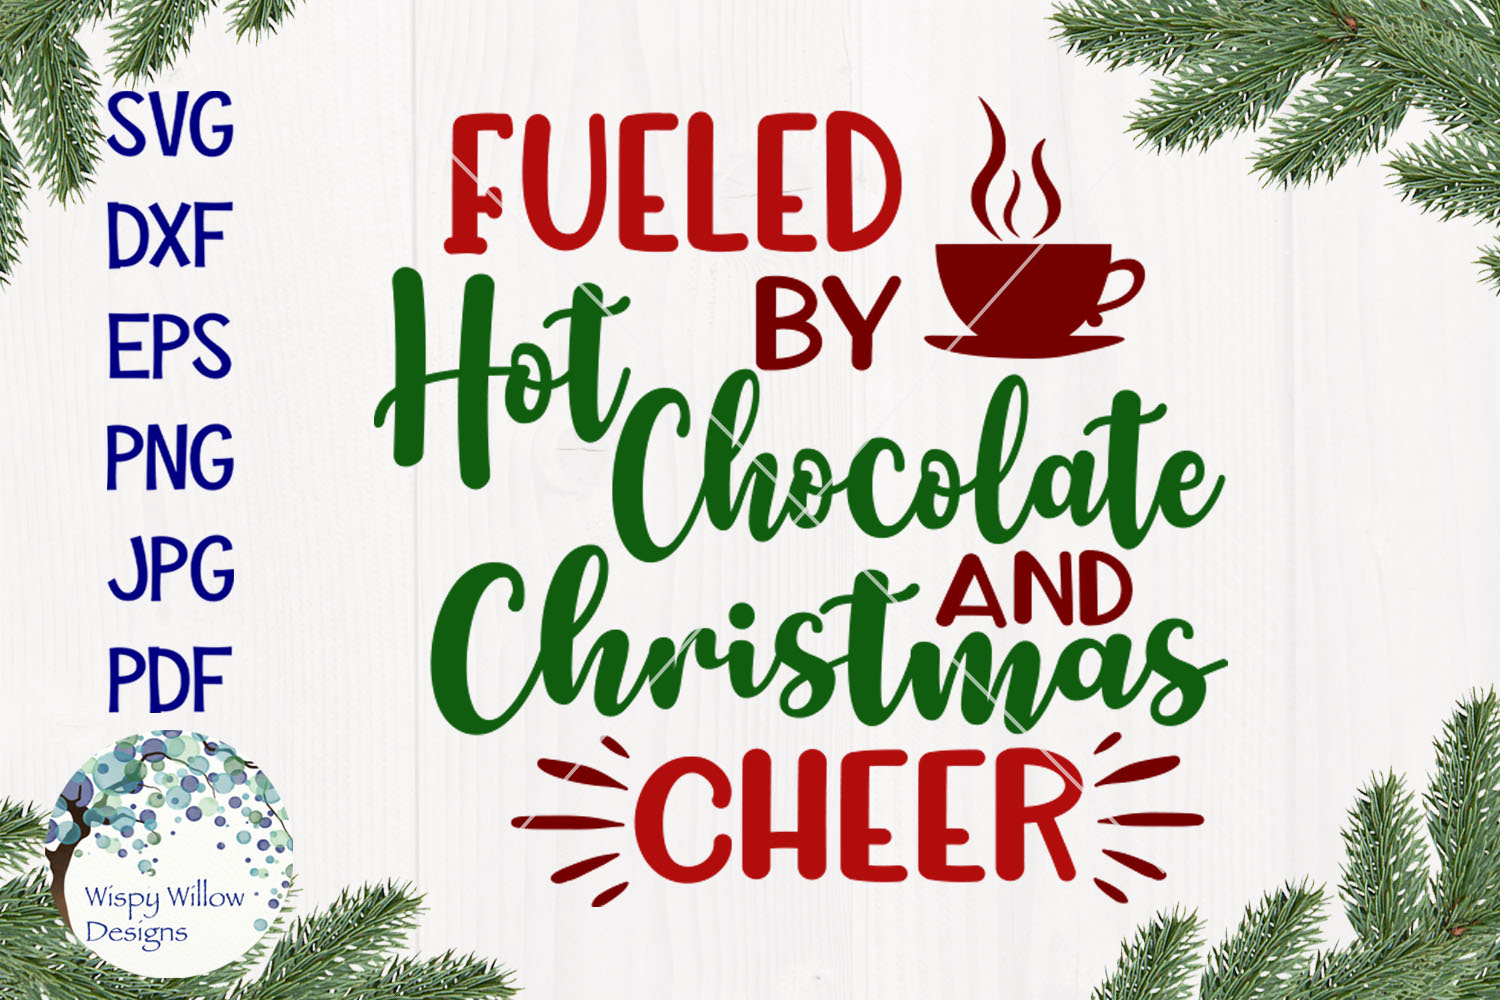 Fueled By Christmas Cheer | Christmas SVG Bundle example image 3